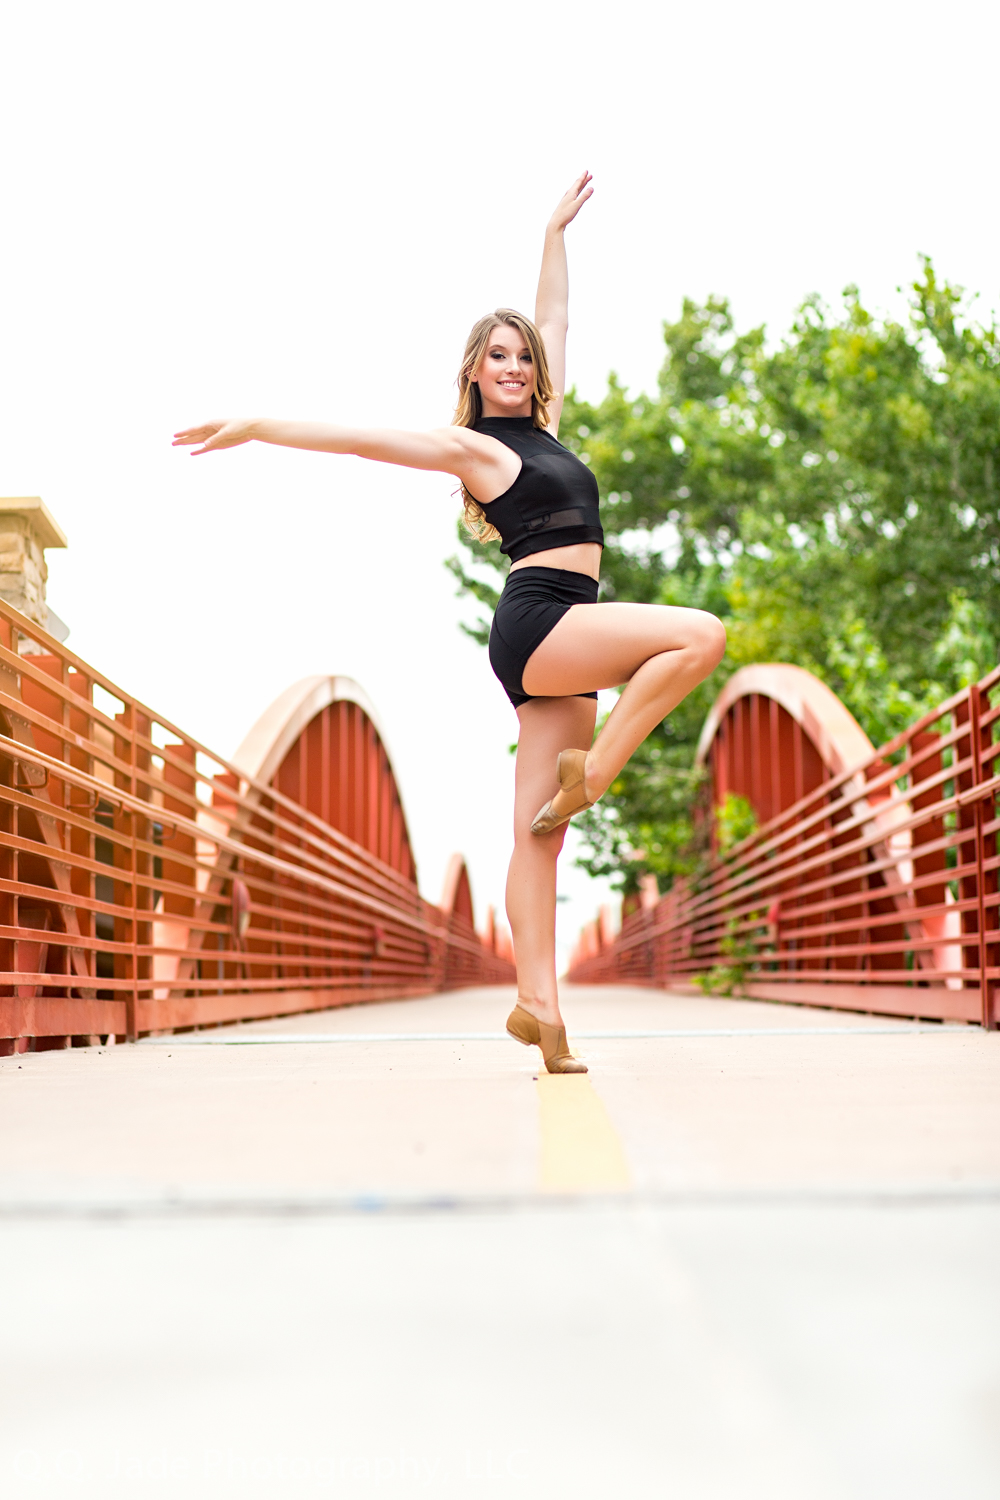 Albuquerque best senior photography-33.jpg